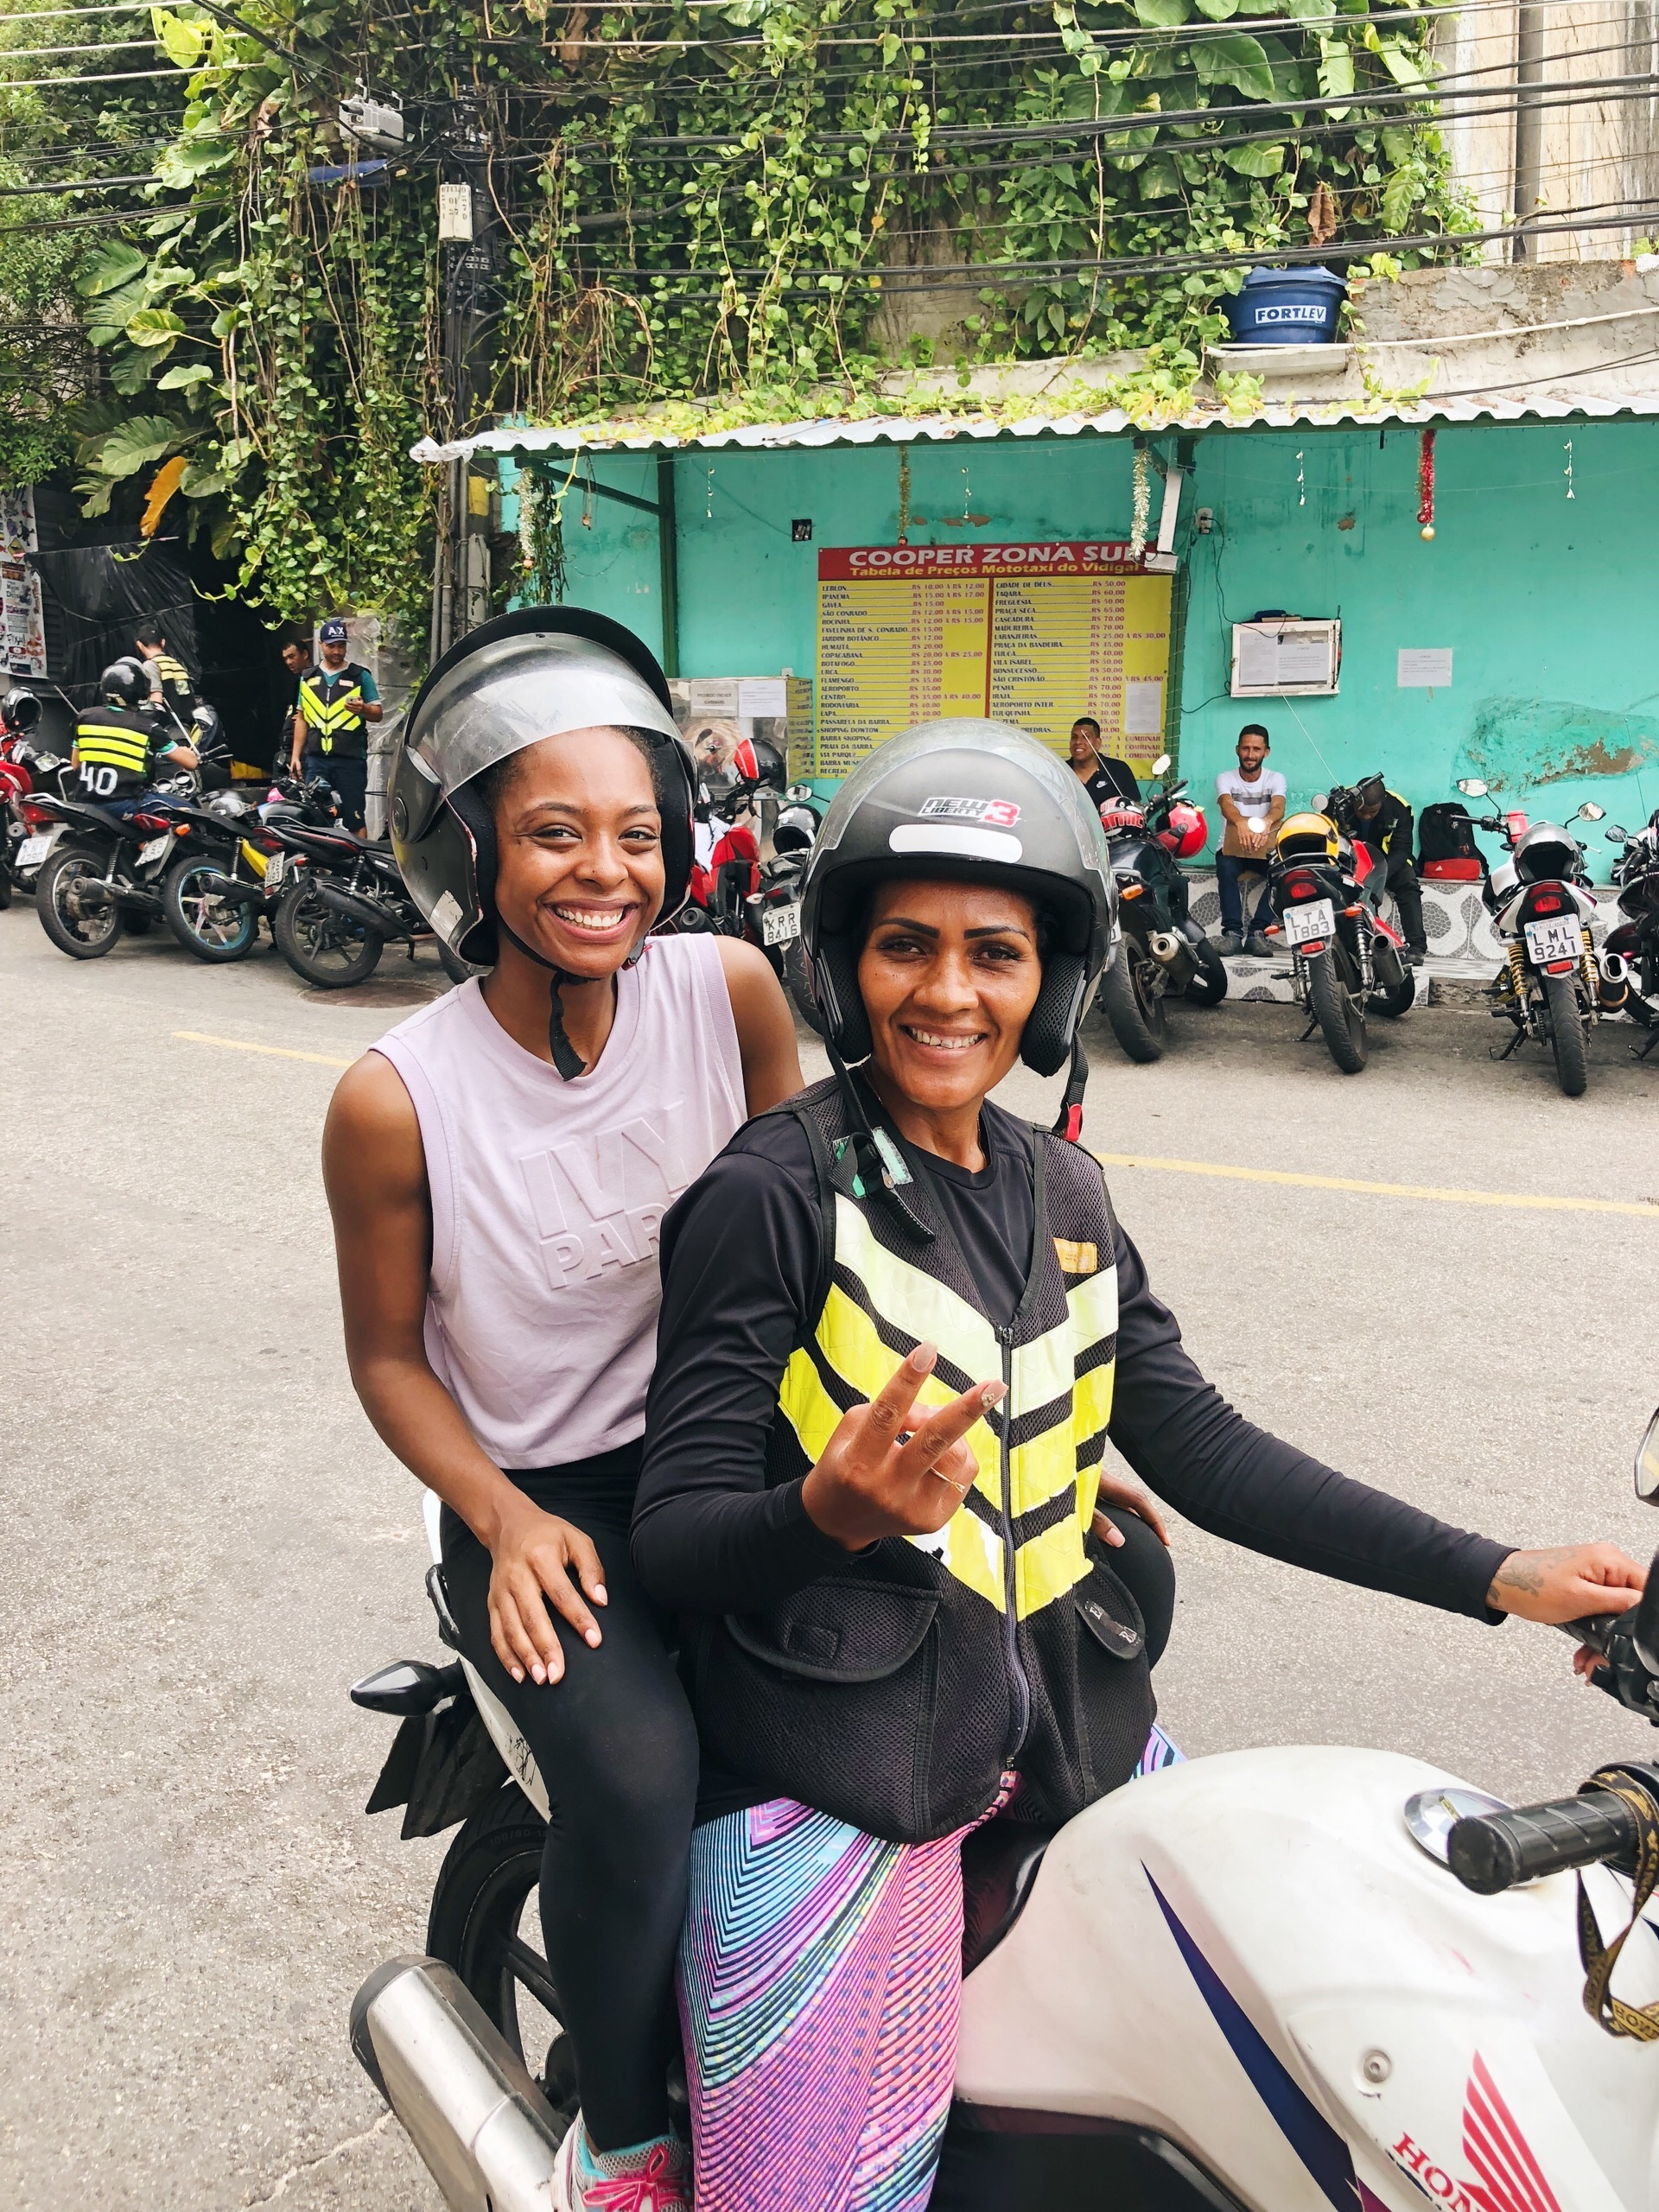 Moto-taxi ride in Vidigal